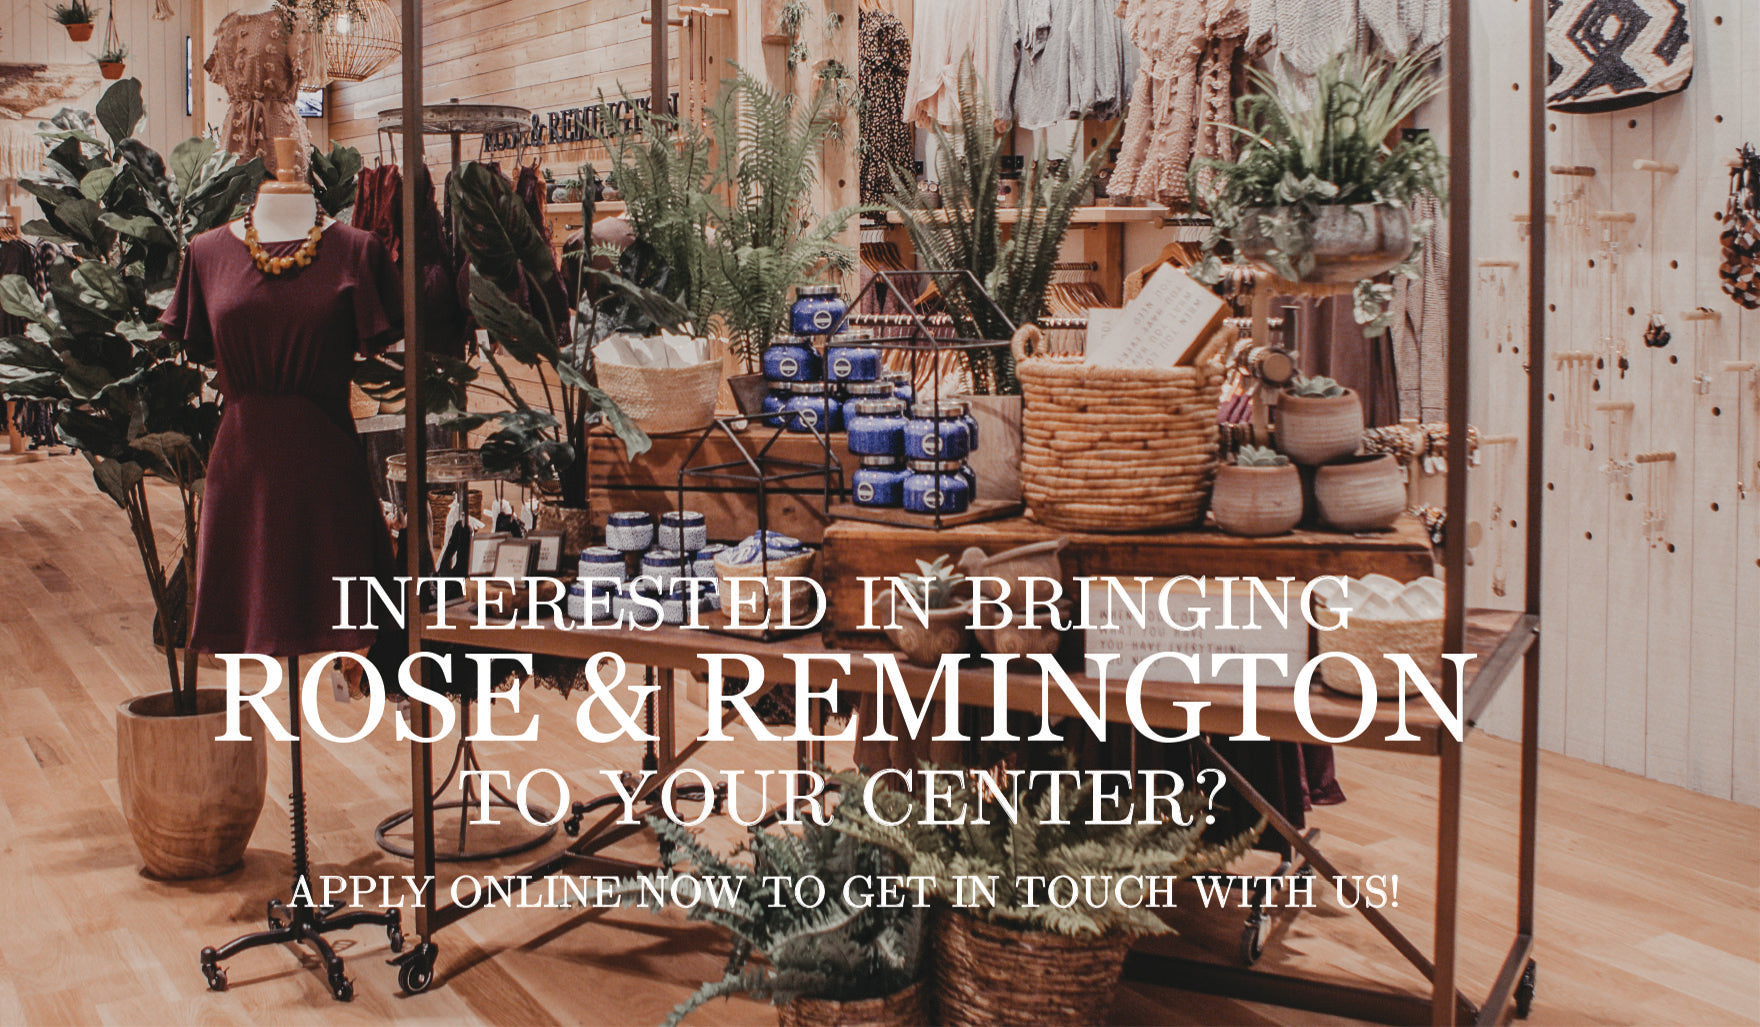 Interested in bringing ROSE & REMINGTON to your center? Get in touch with us by applying online now.